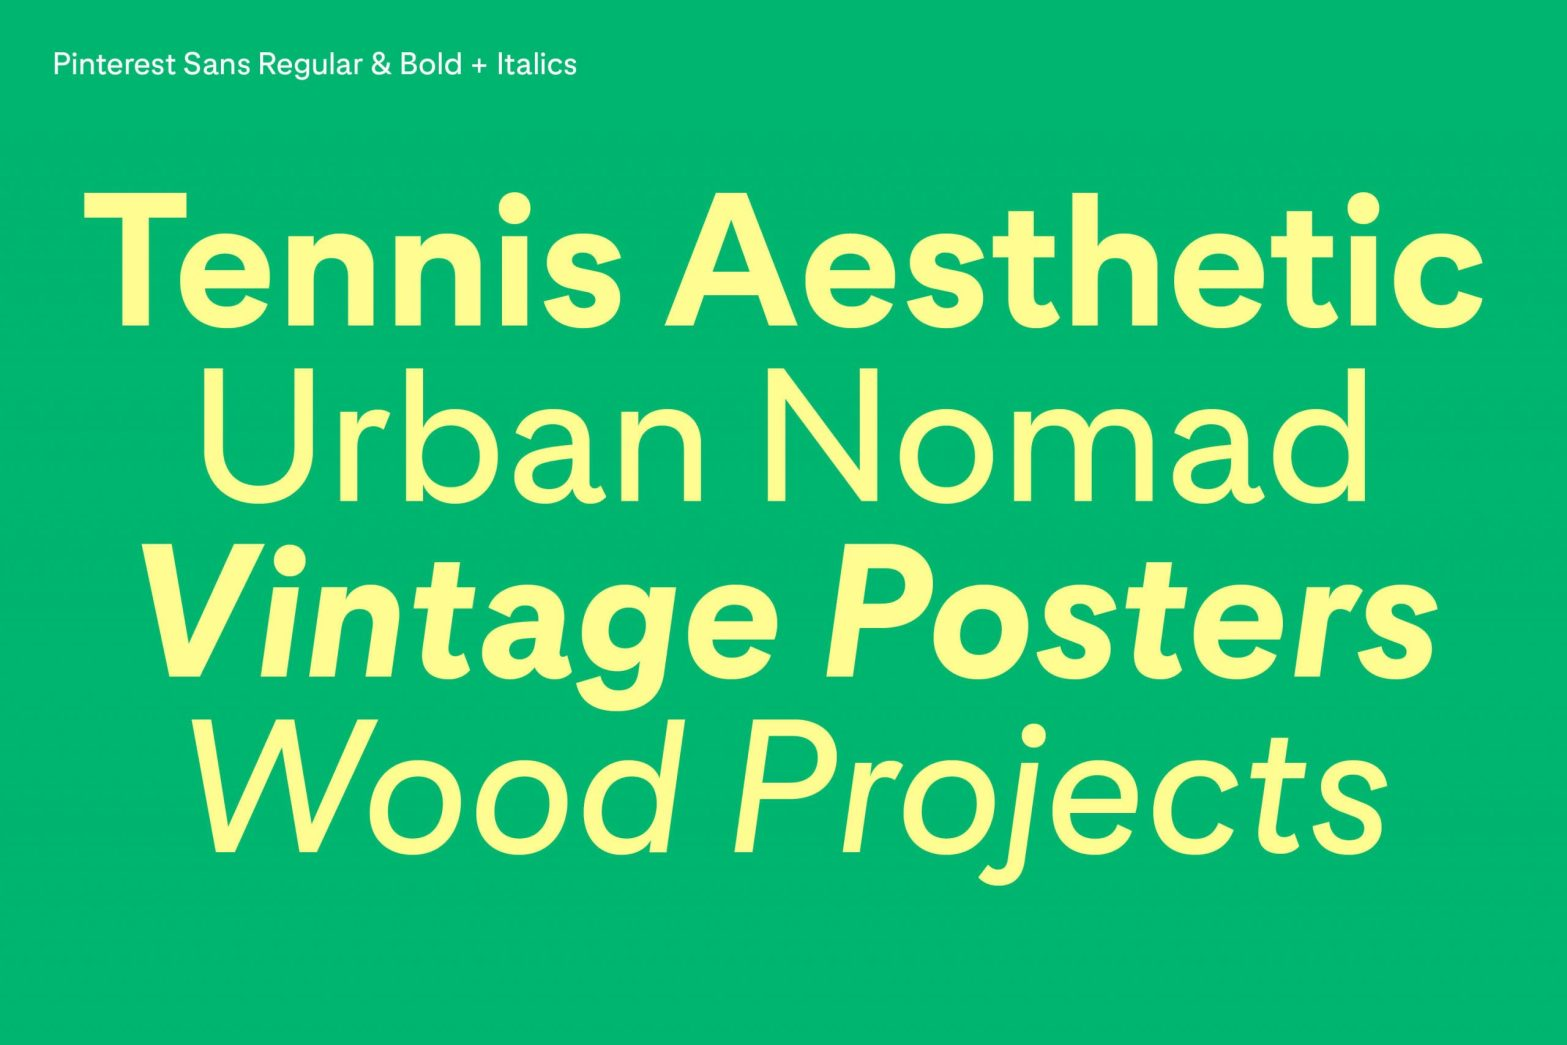 Thumbnail for Pin This: Pinterest Sans Custom Typeface By Grilli Type